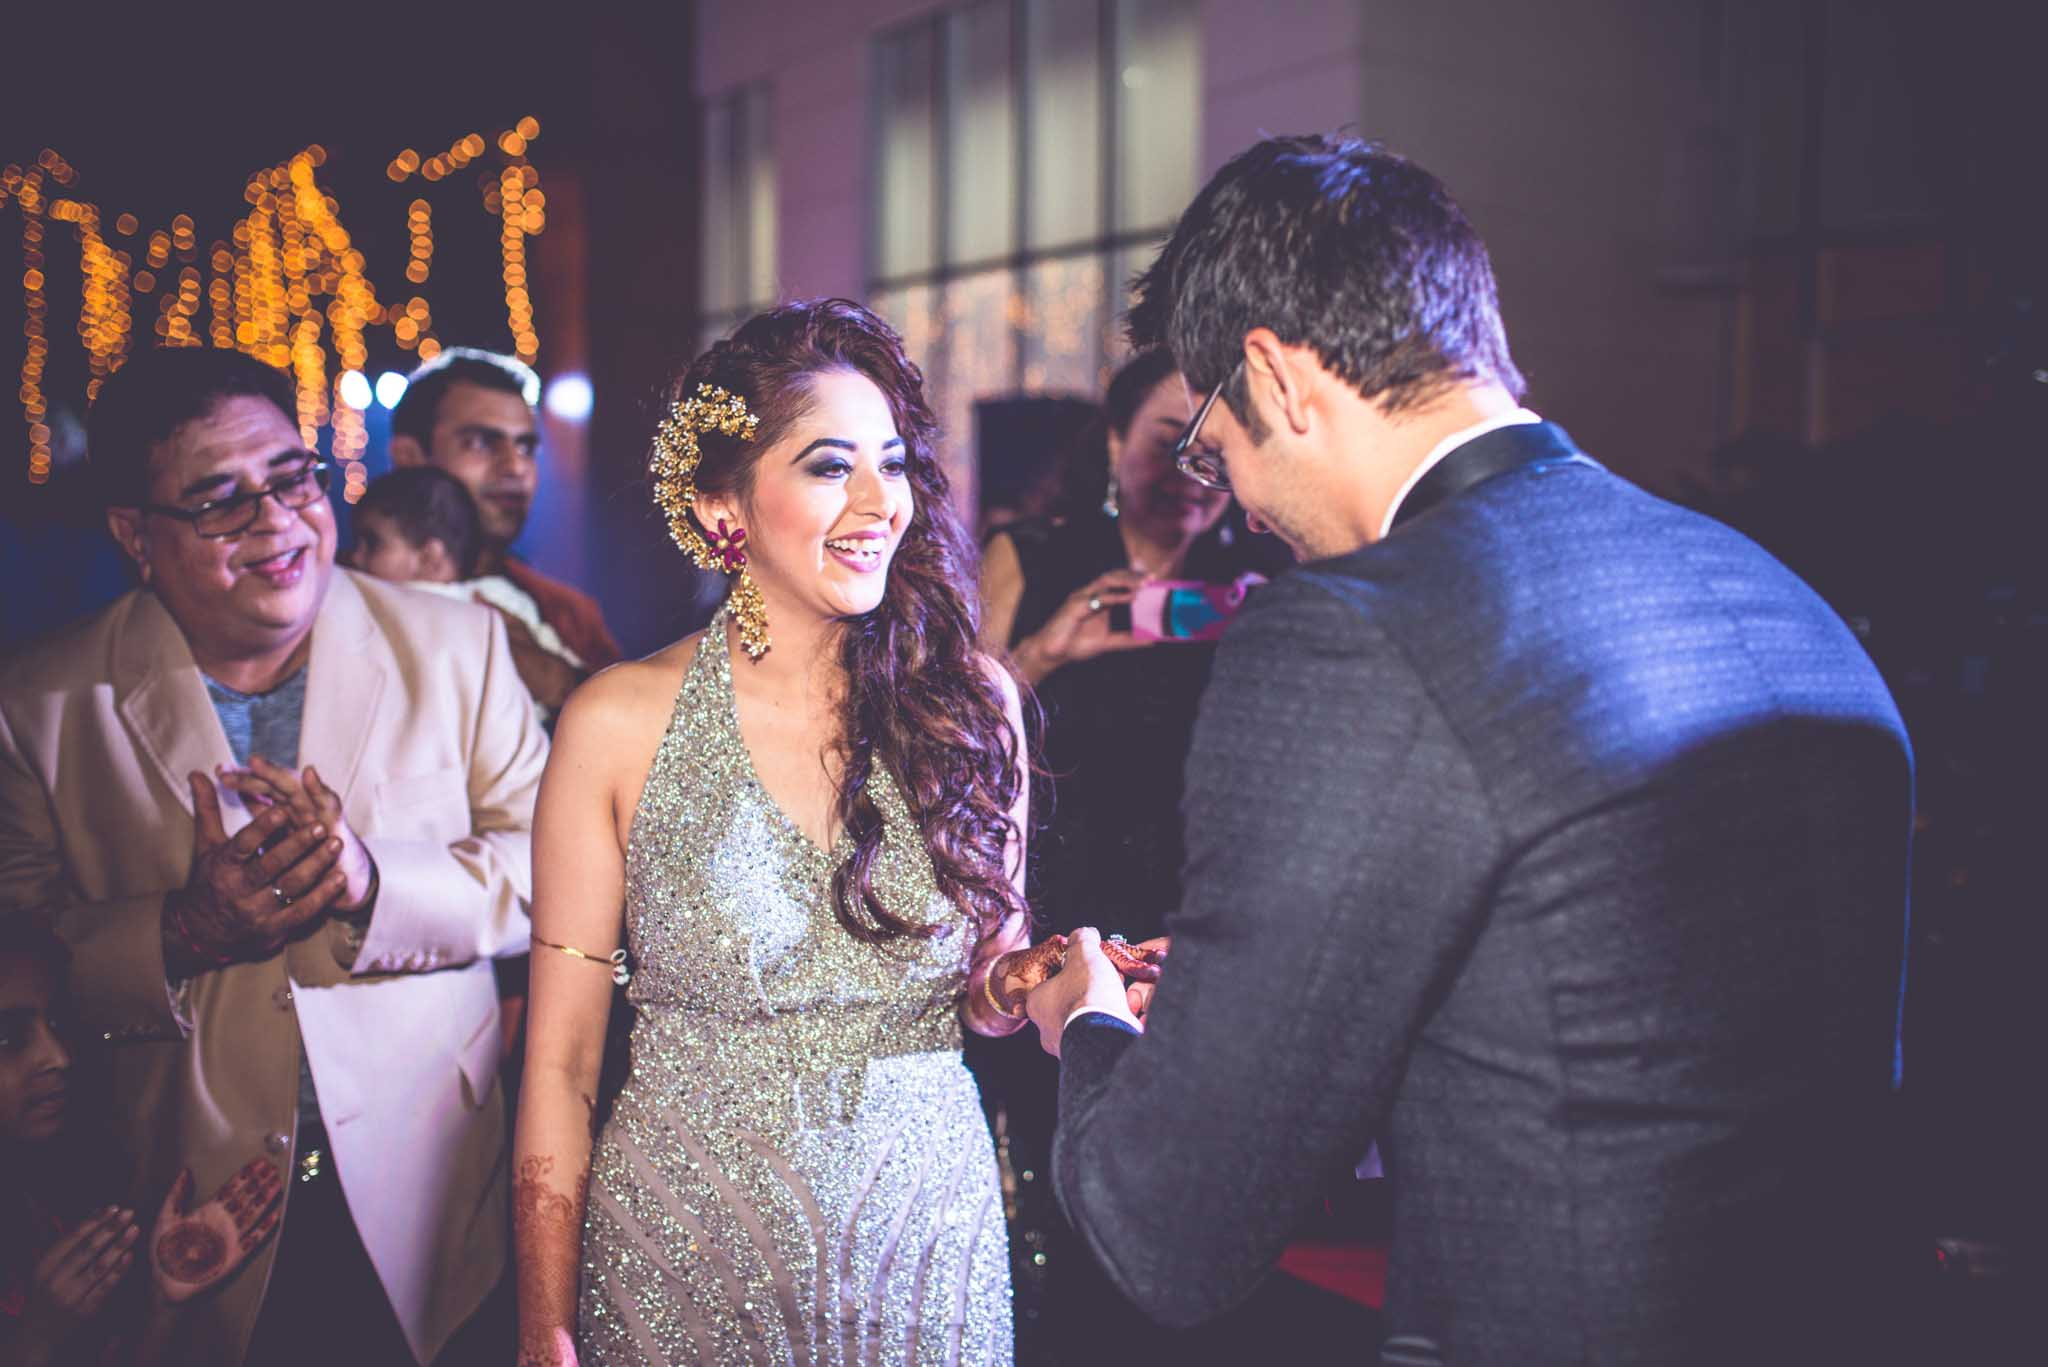 StRegis-Palladium-Mumbai-Candid-Wedding-Photography-5